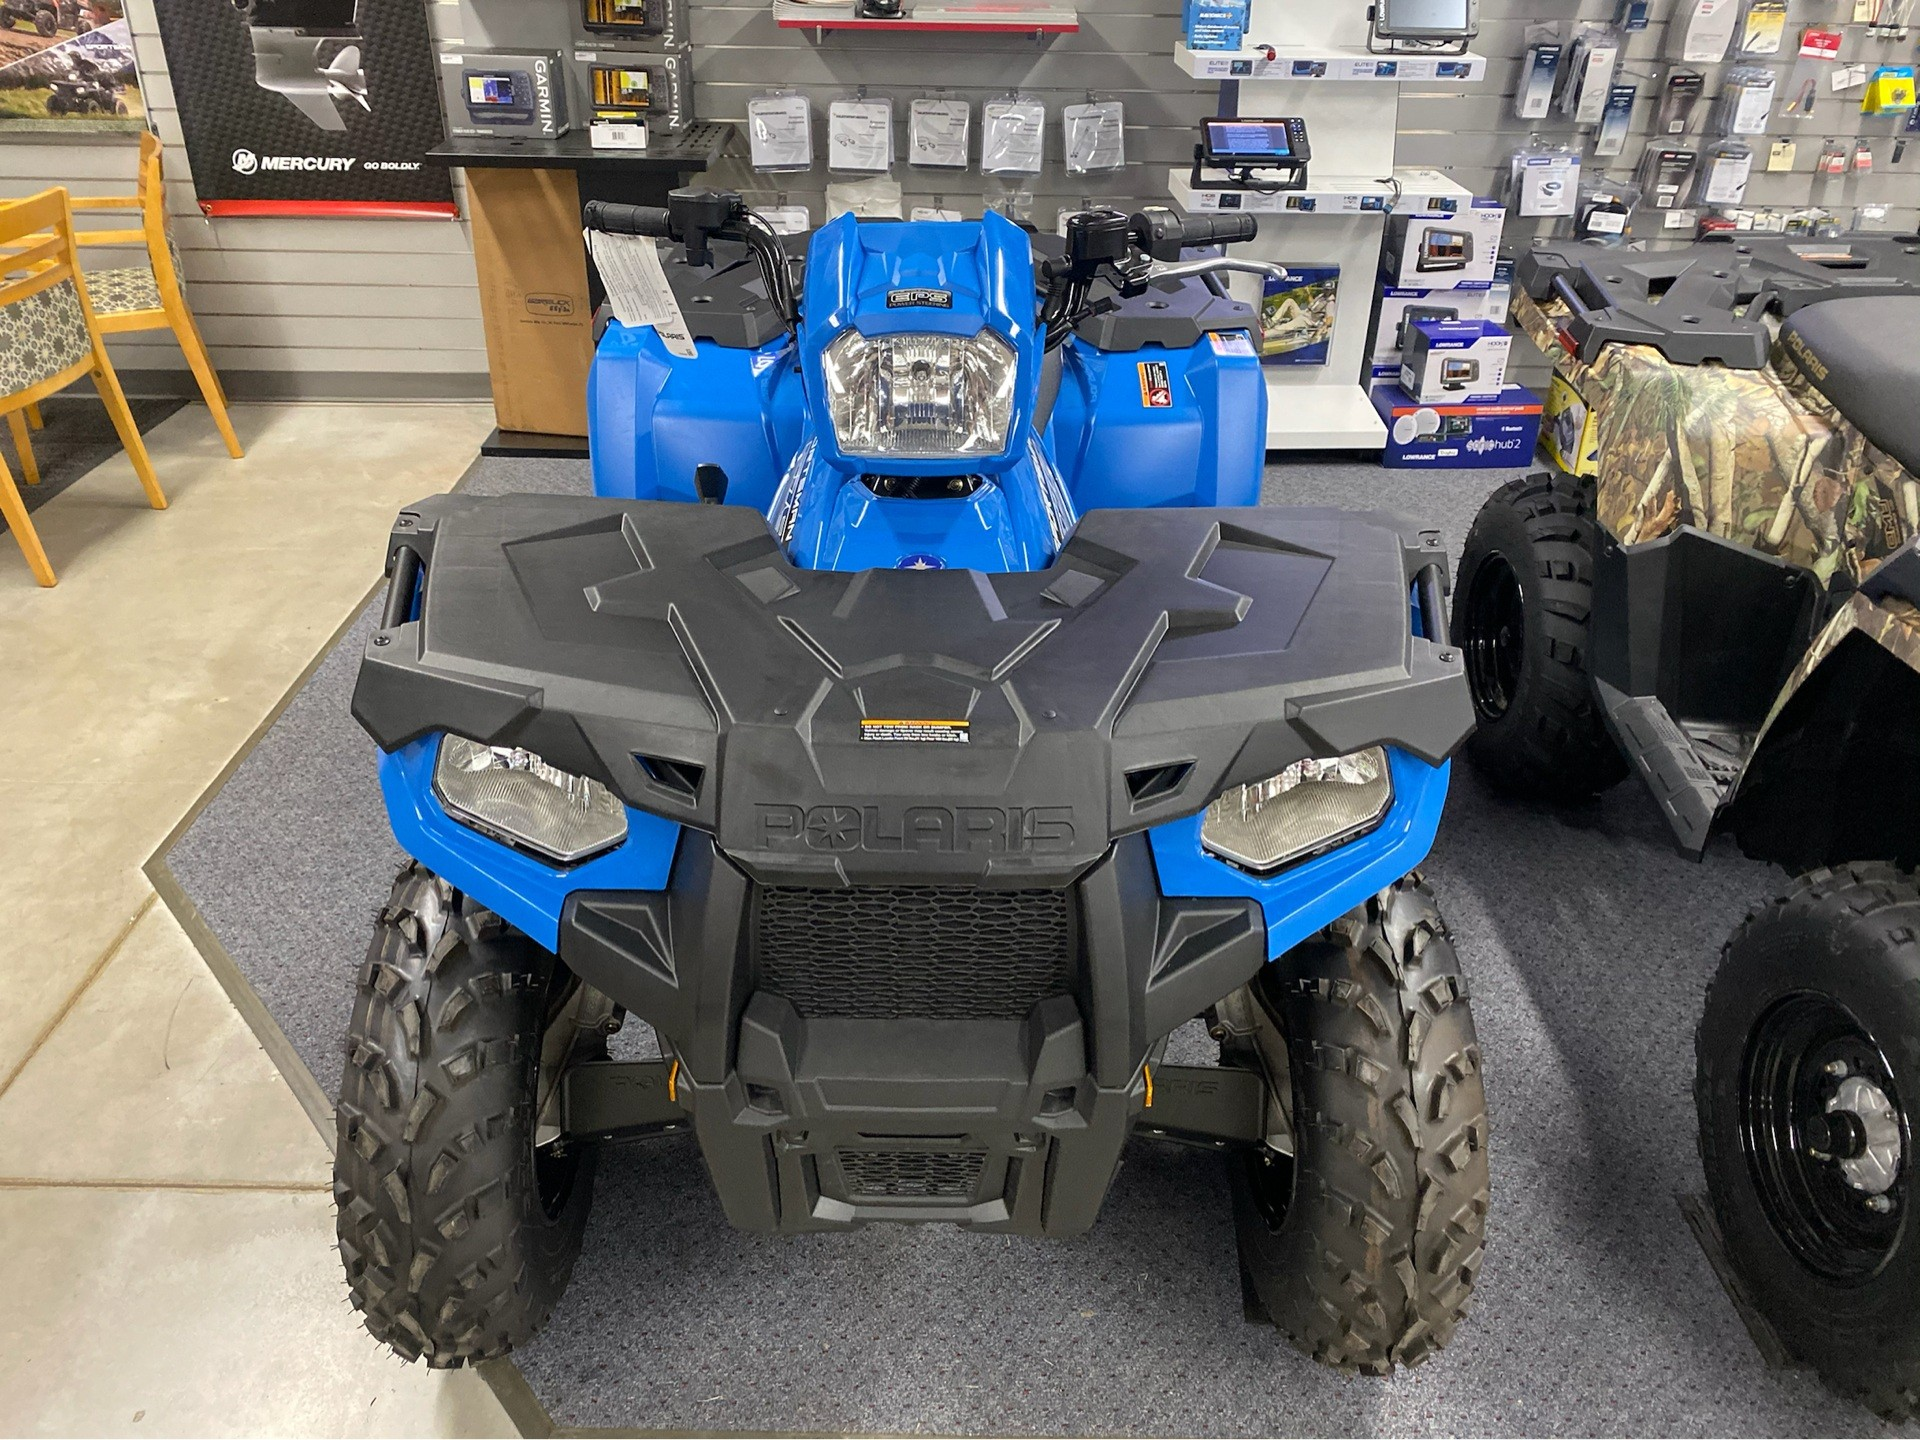 2019 Polaris Sportsman 570 EPS in Appleton, Wisconsin - Photo 2